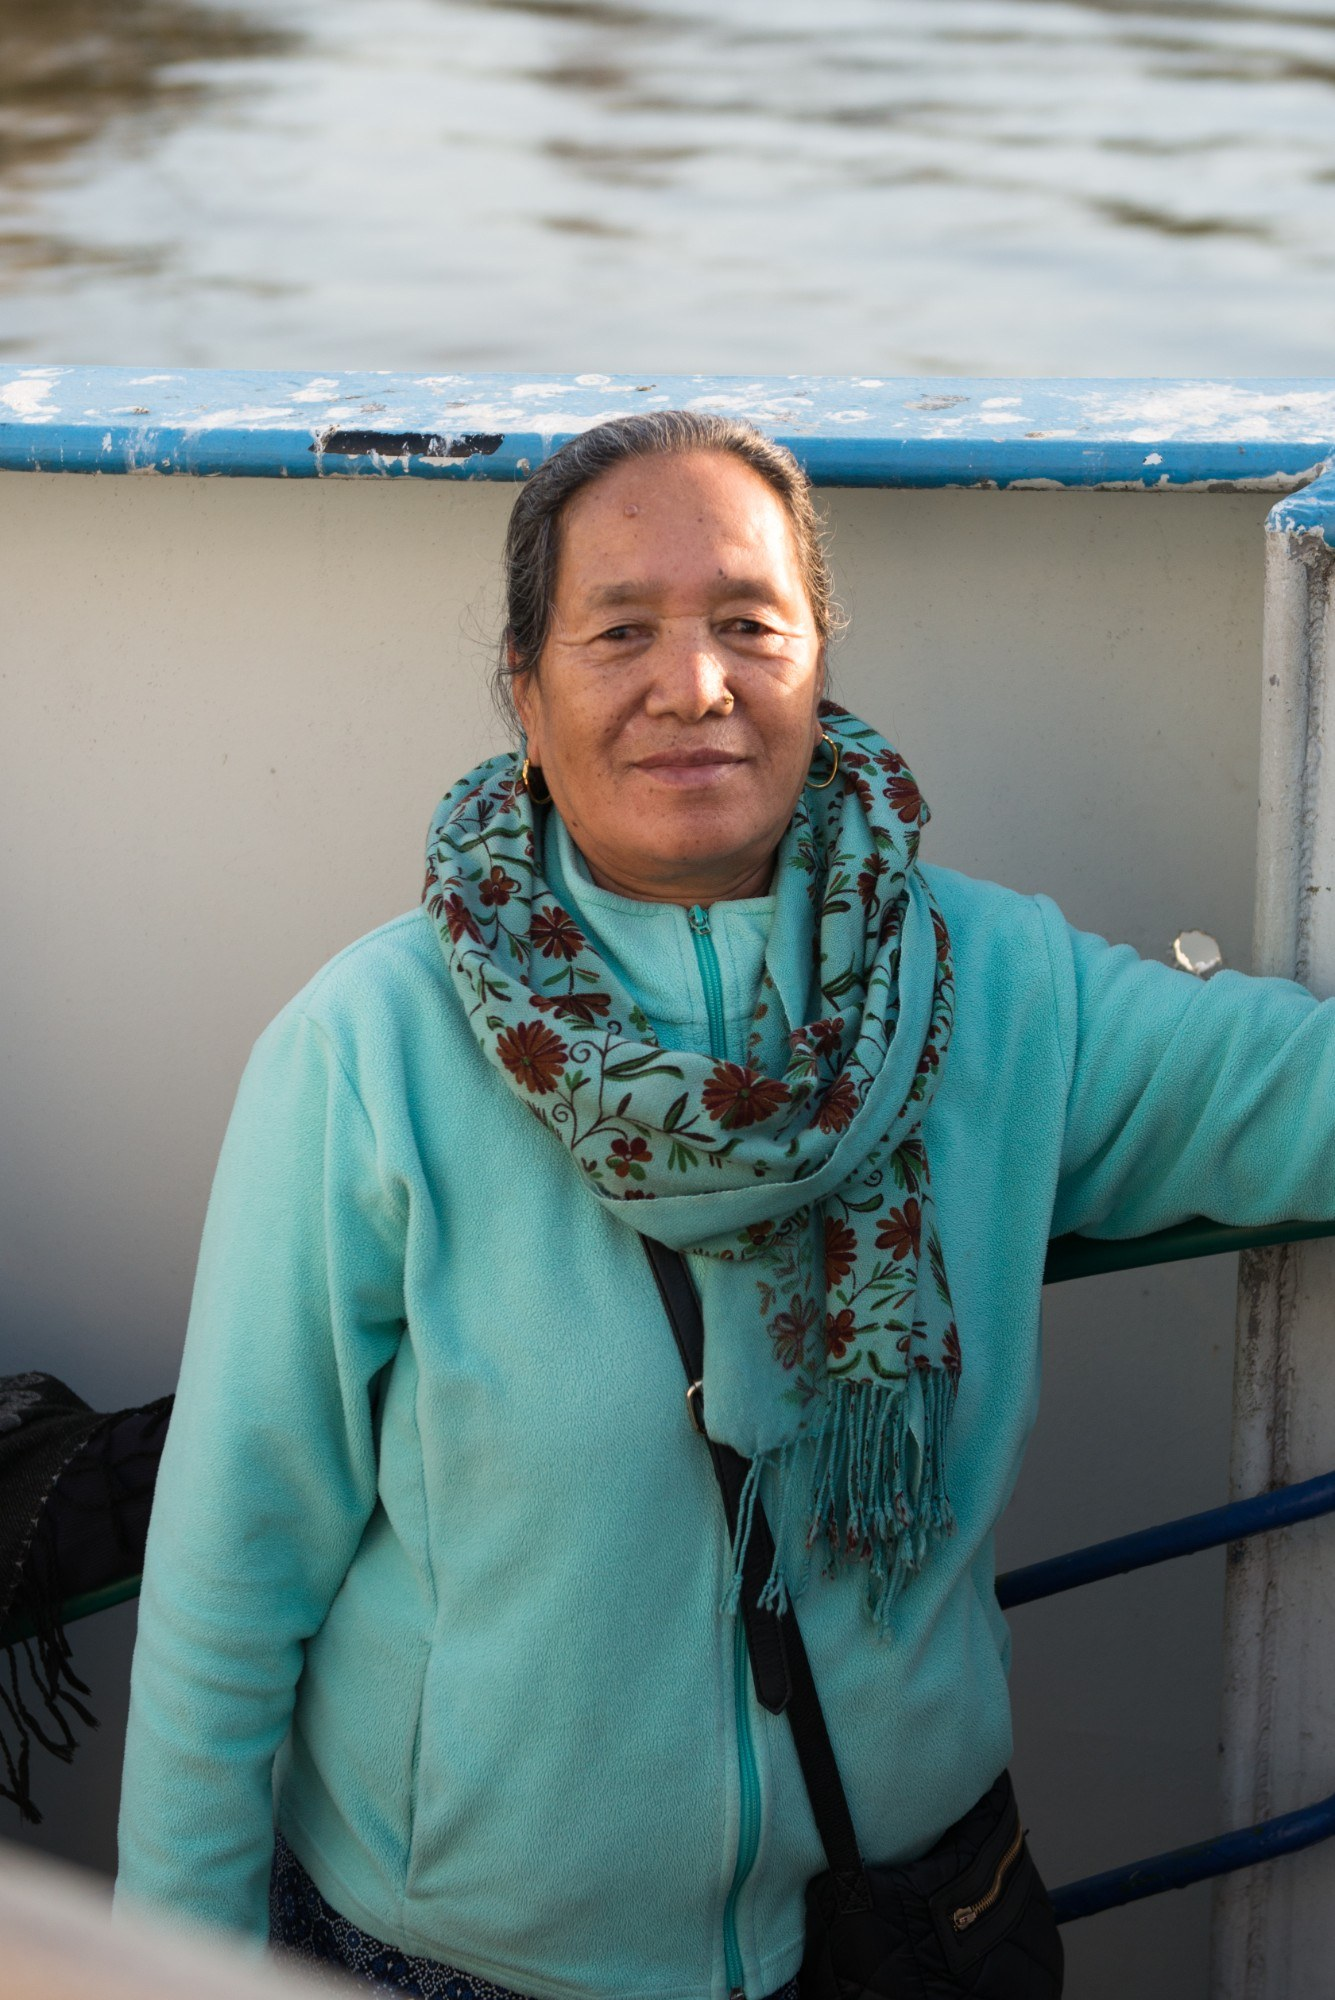 Portrait of woman on the ferry.